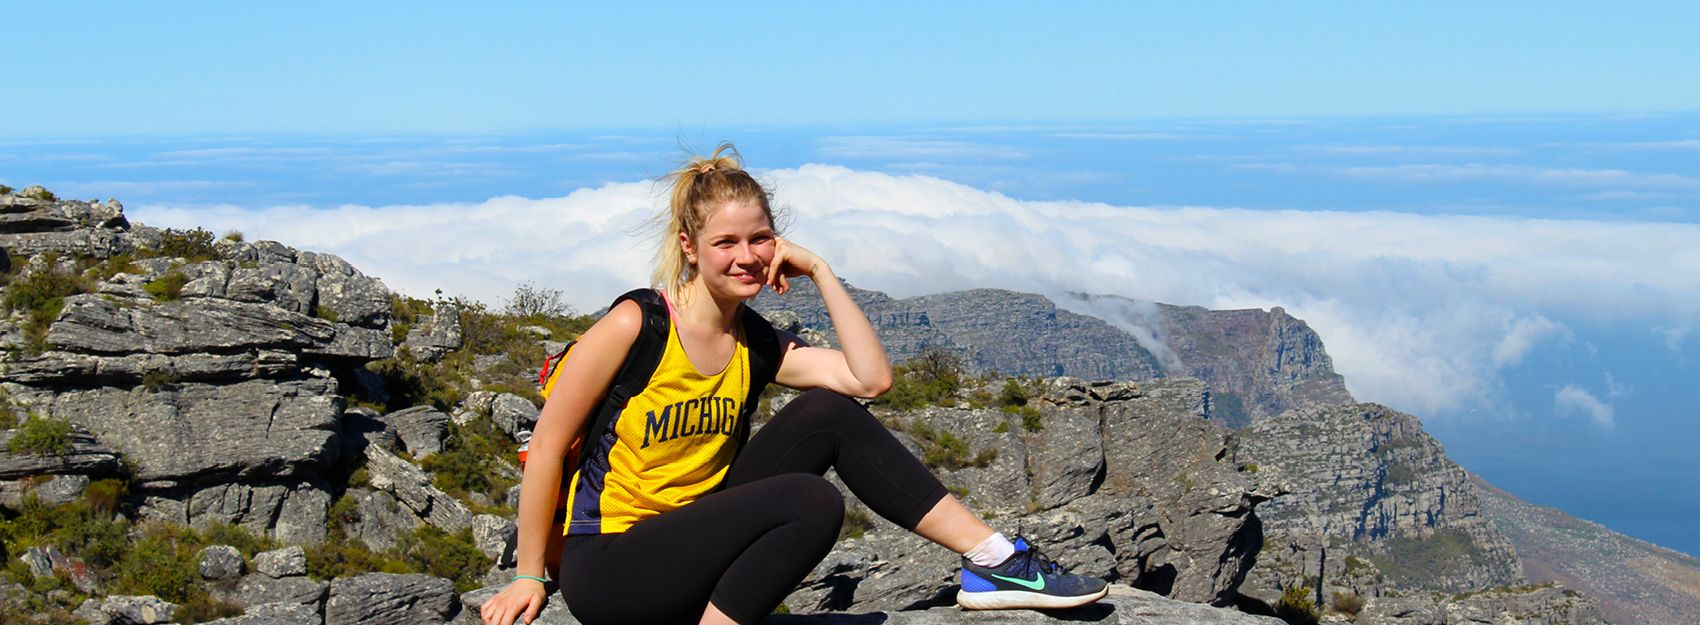 University of Michigan study abroad student in Cape Town